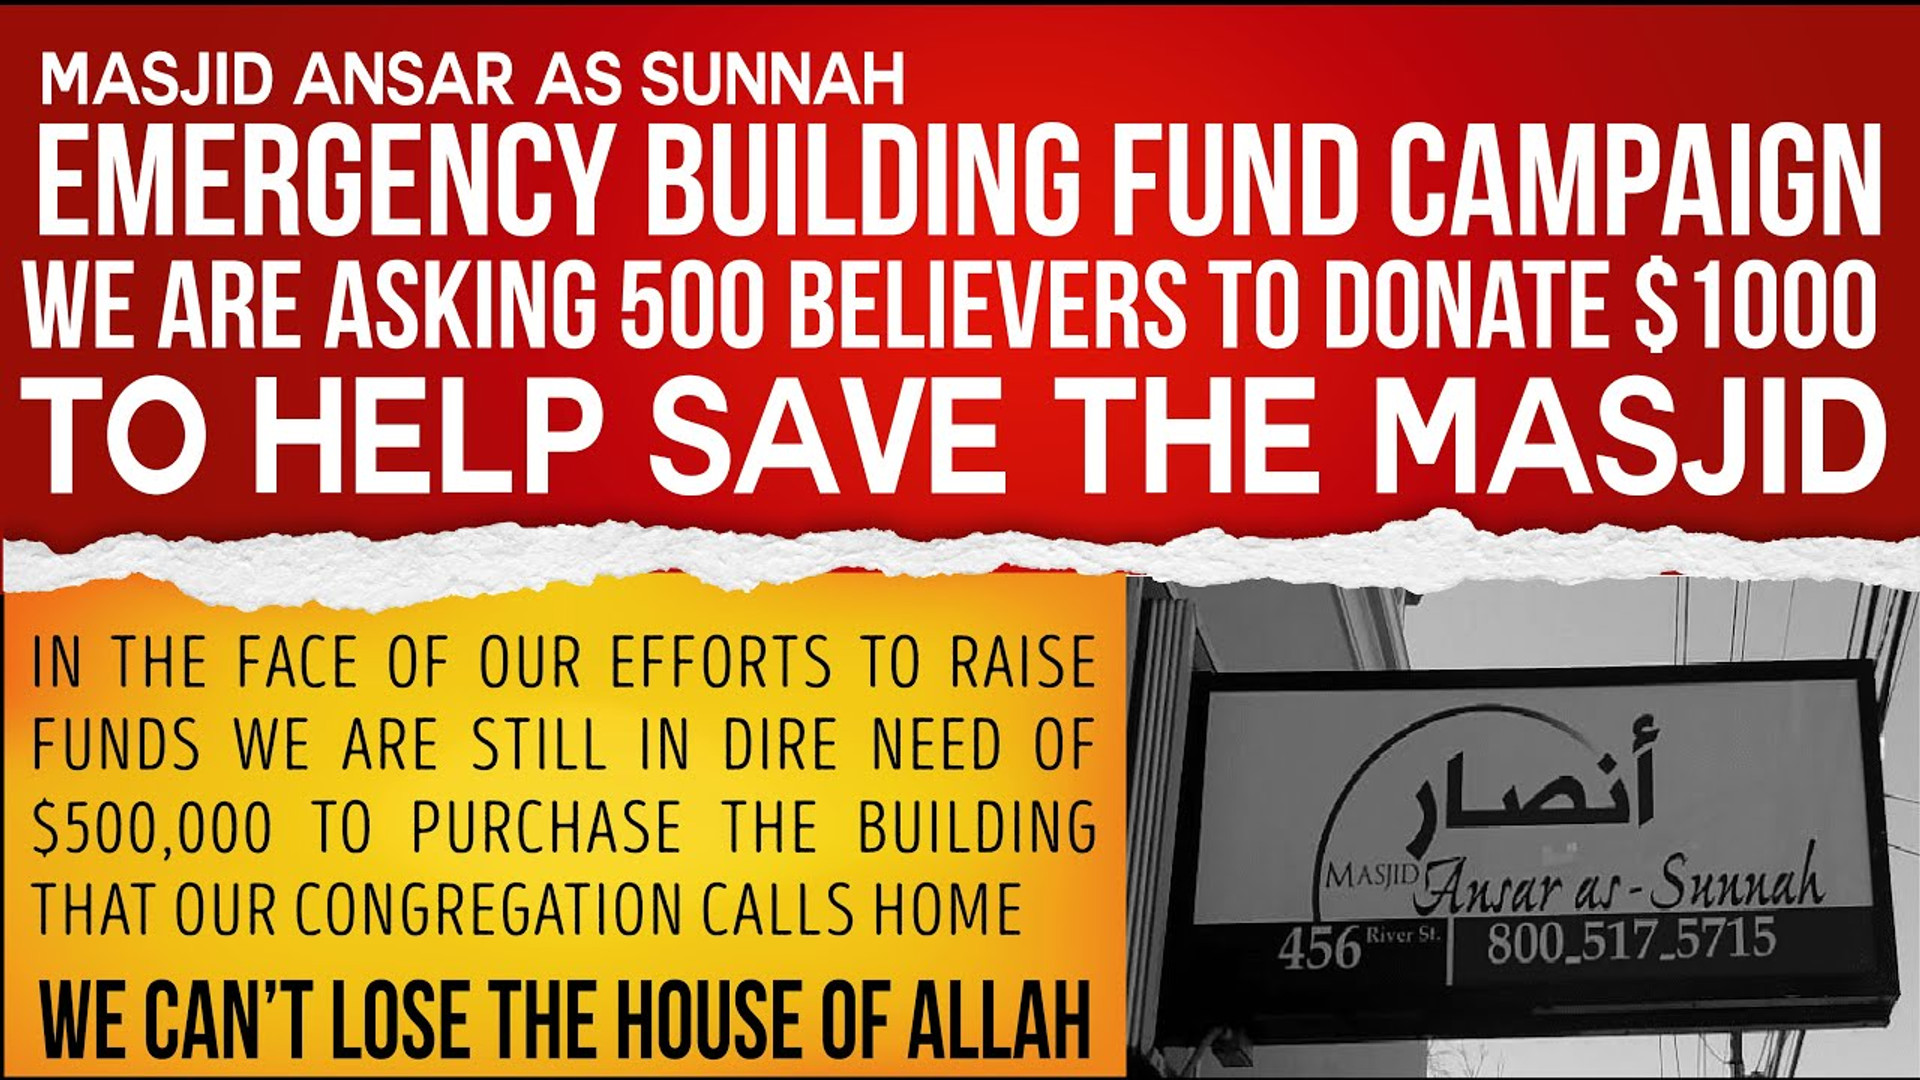 Masjid Ansar As Sunnah Emergency Building Fund Campaign